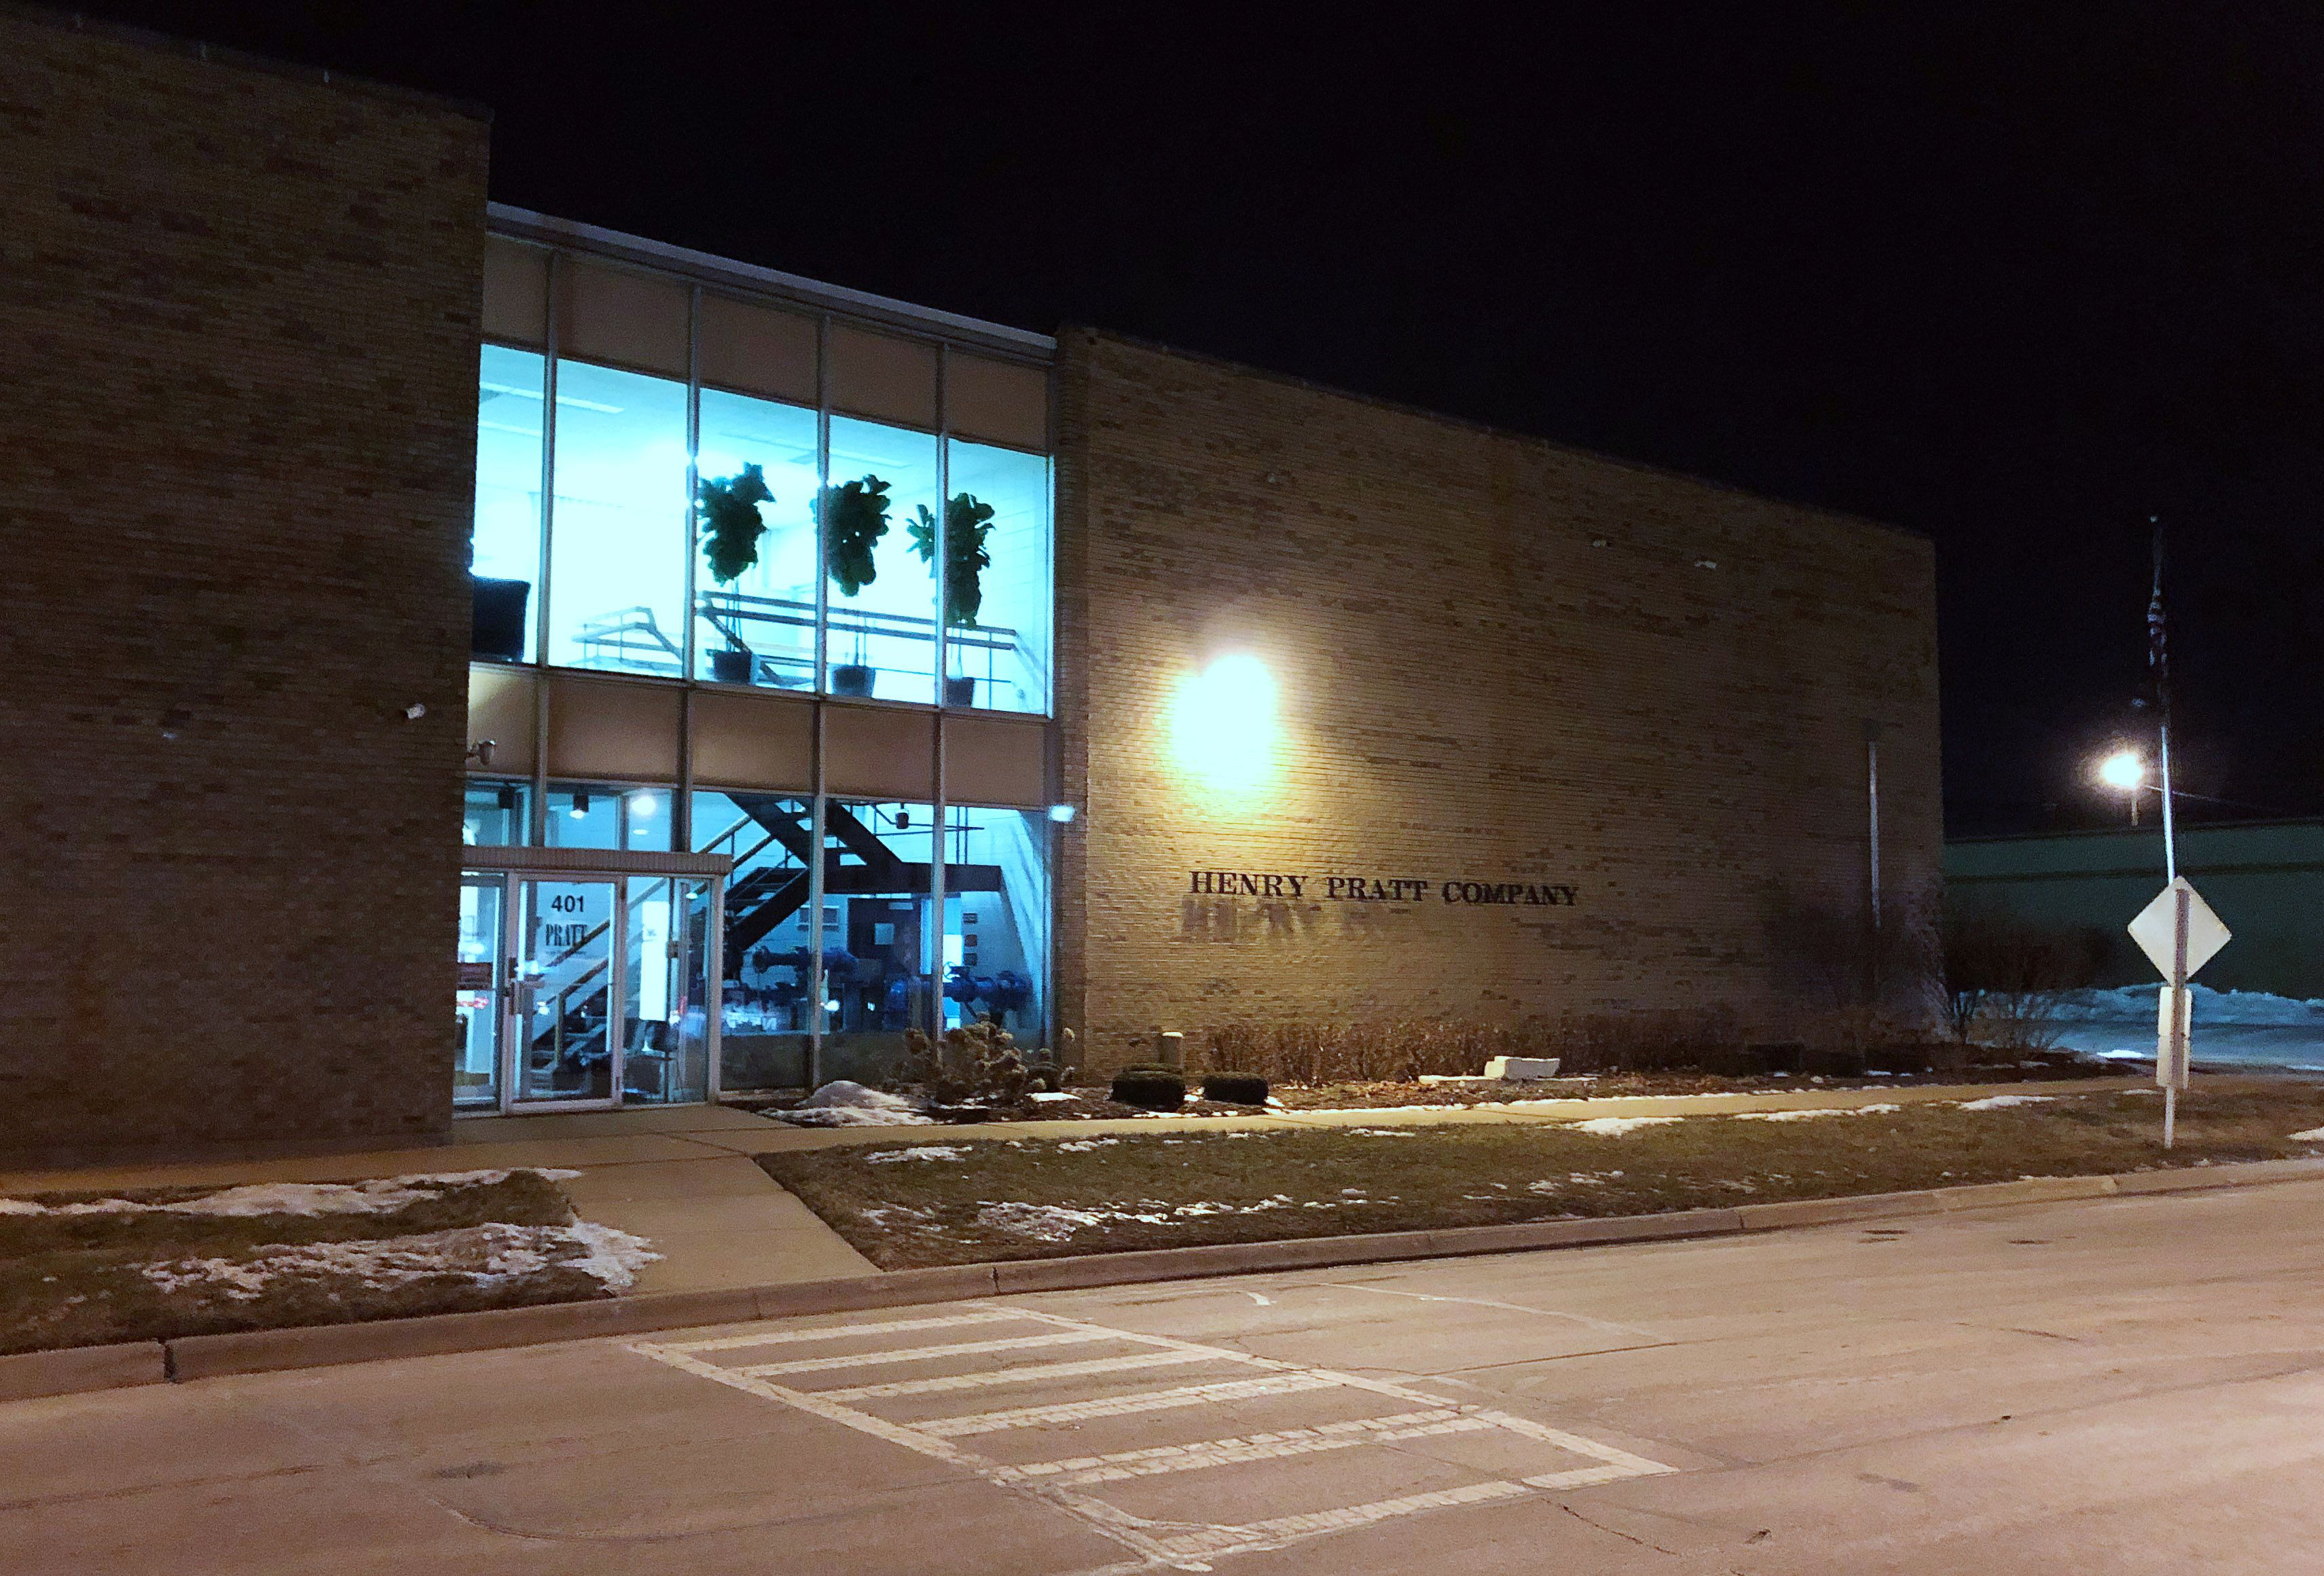 Read: 5 Victims Identified In Illinois Factory Mass Shooting